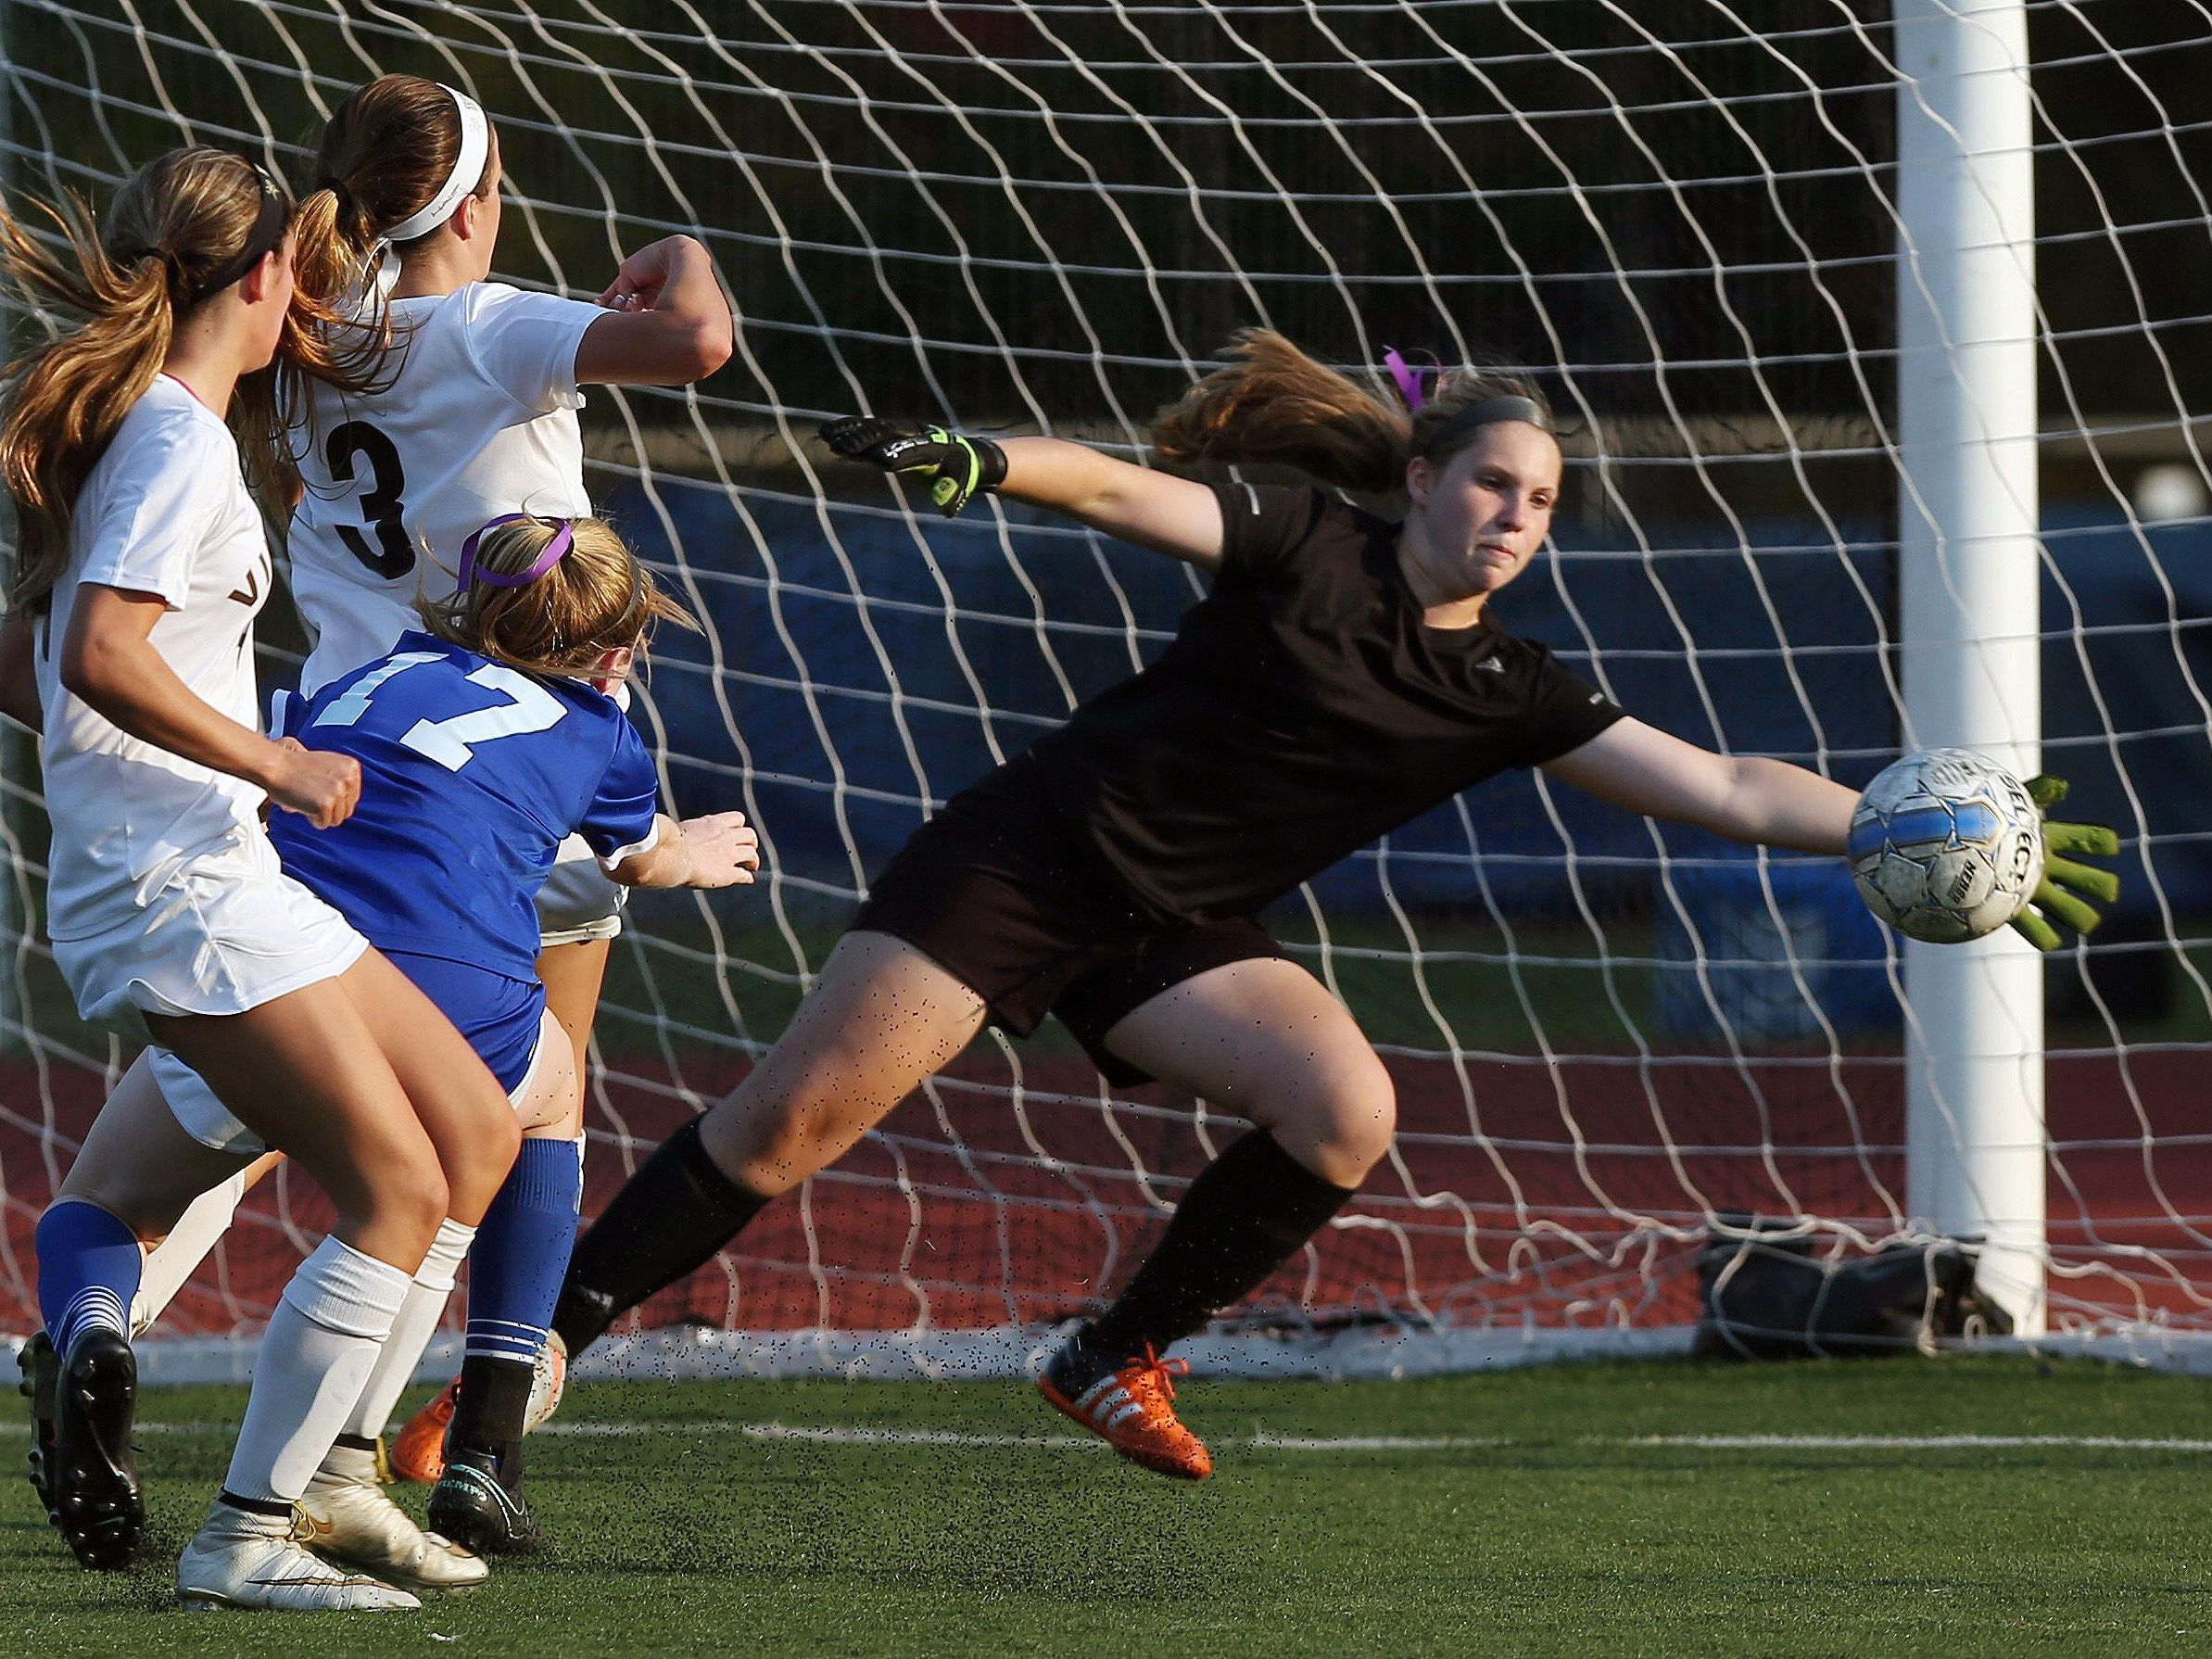 Pirates keeper Katherine Carstenson makes a save during Tuesday's game. Clarkstown South and Pearl River played to a 0-0 tie at Clarkstown South High School in West Nyack.